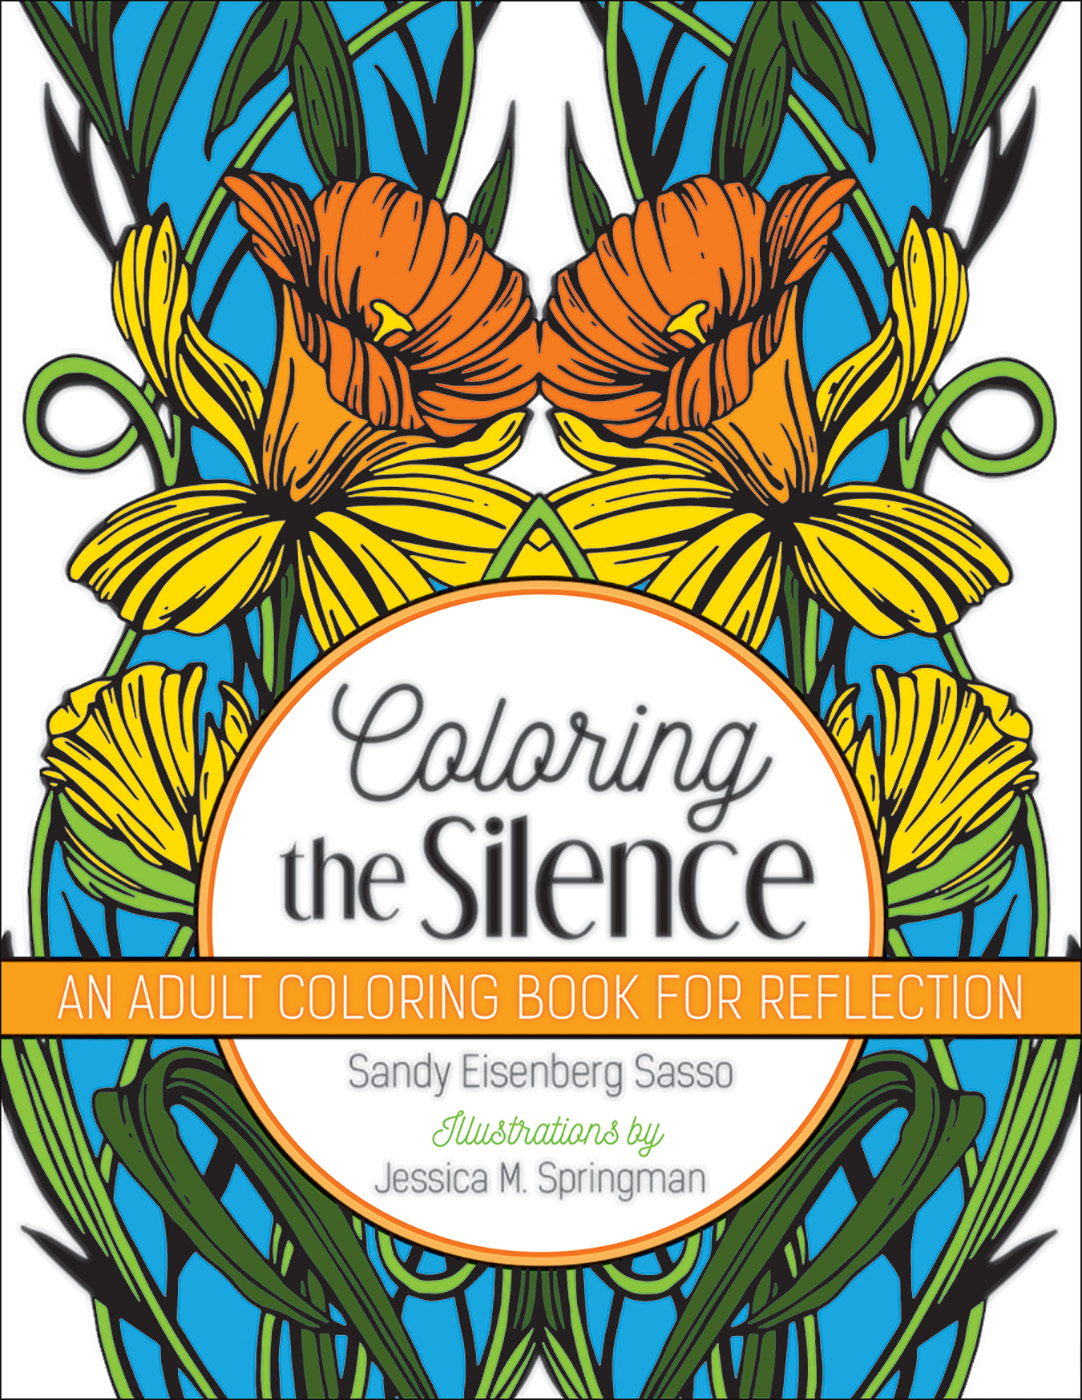 Adult coloring books for pc download - Coloring The Silence